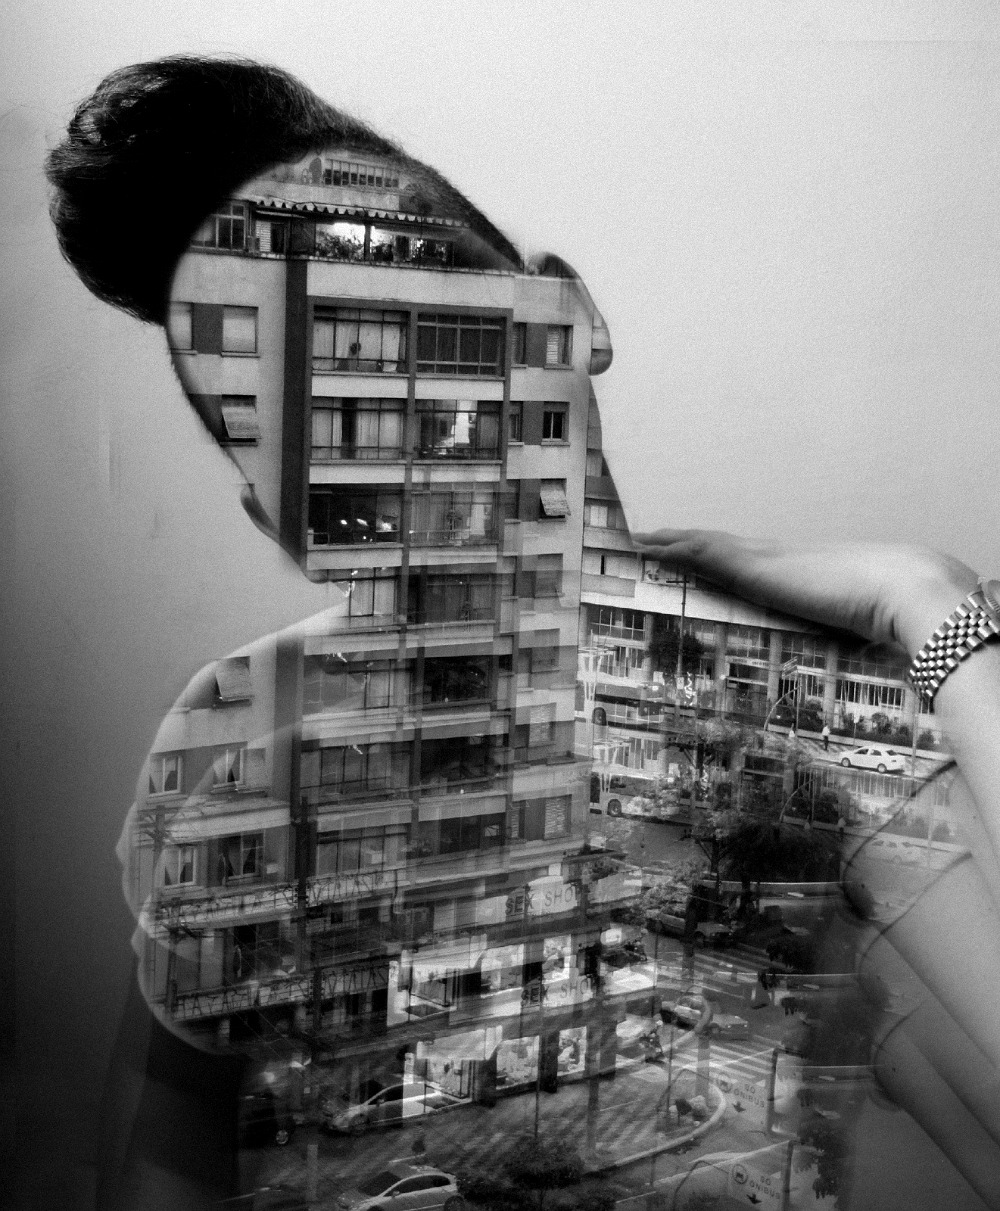 heitor magno double exposure